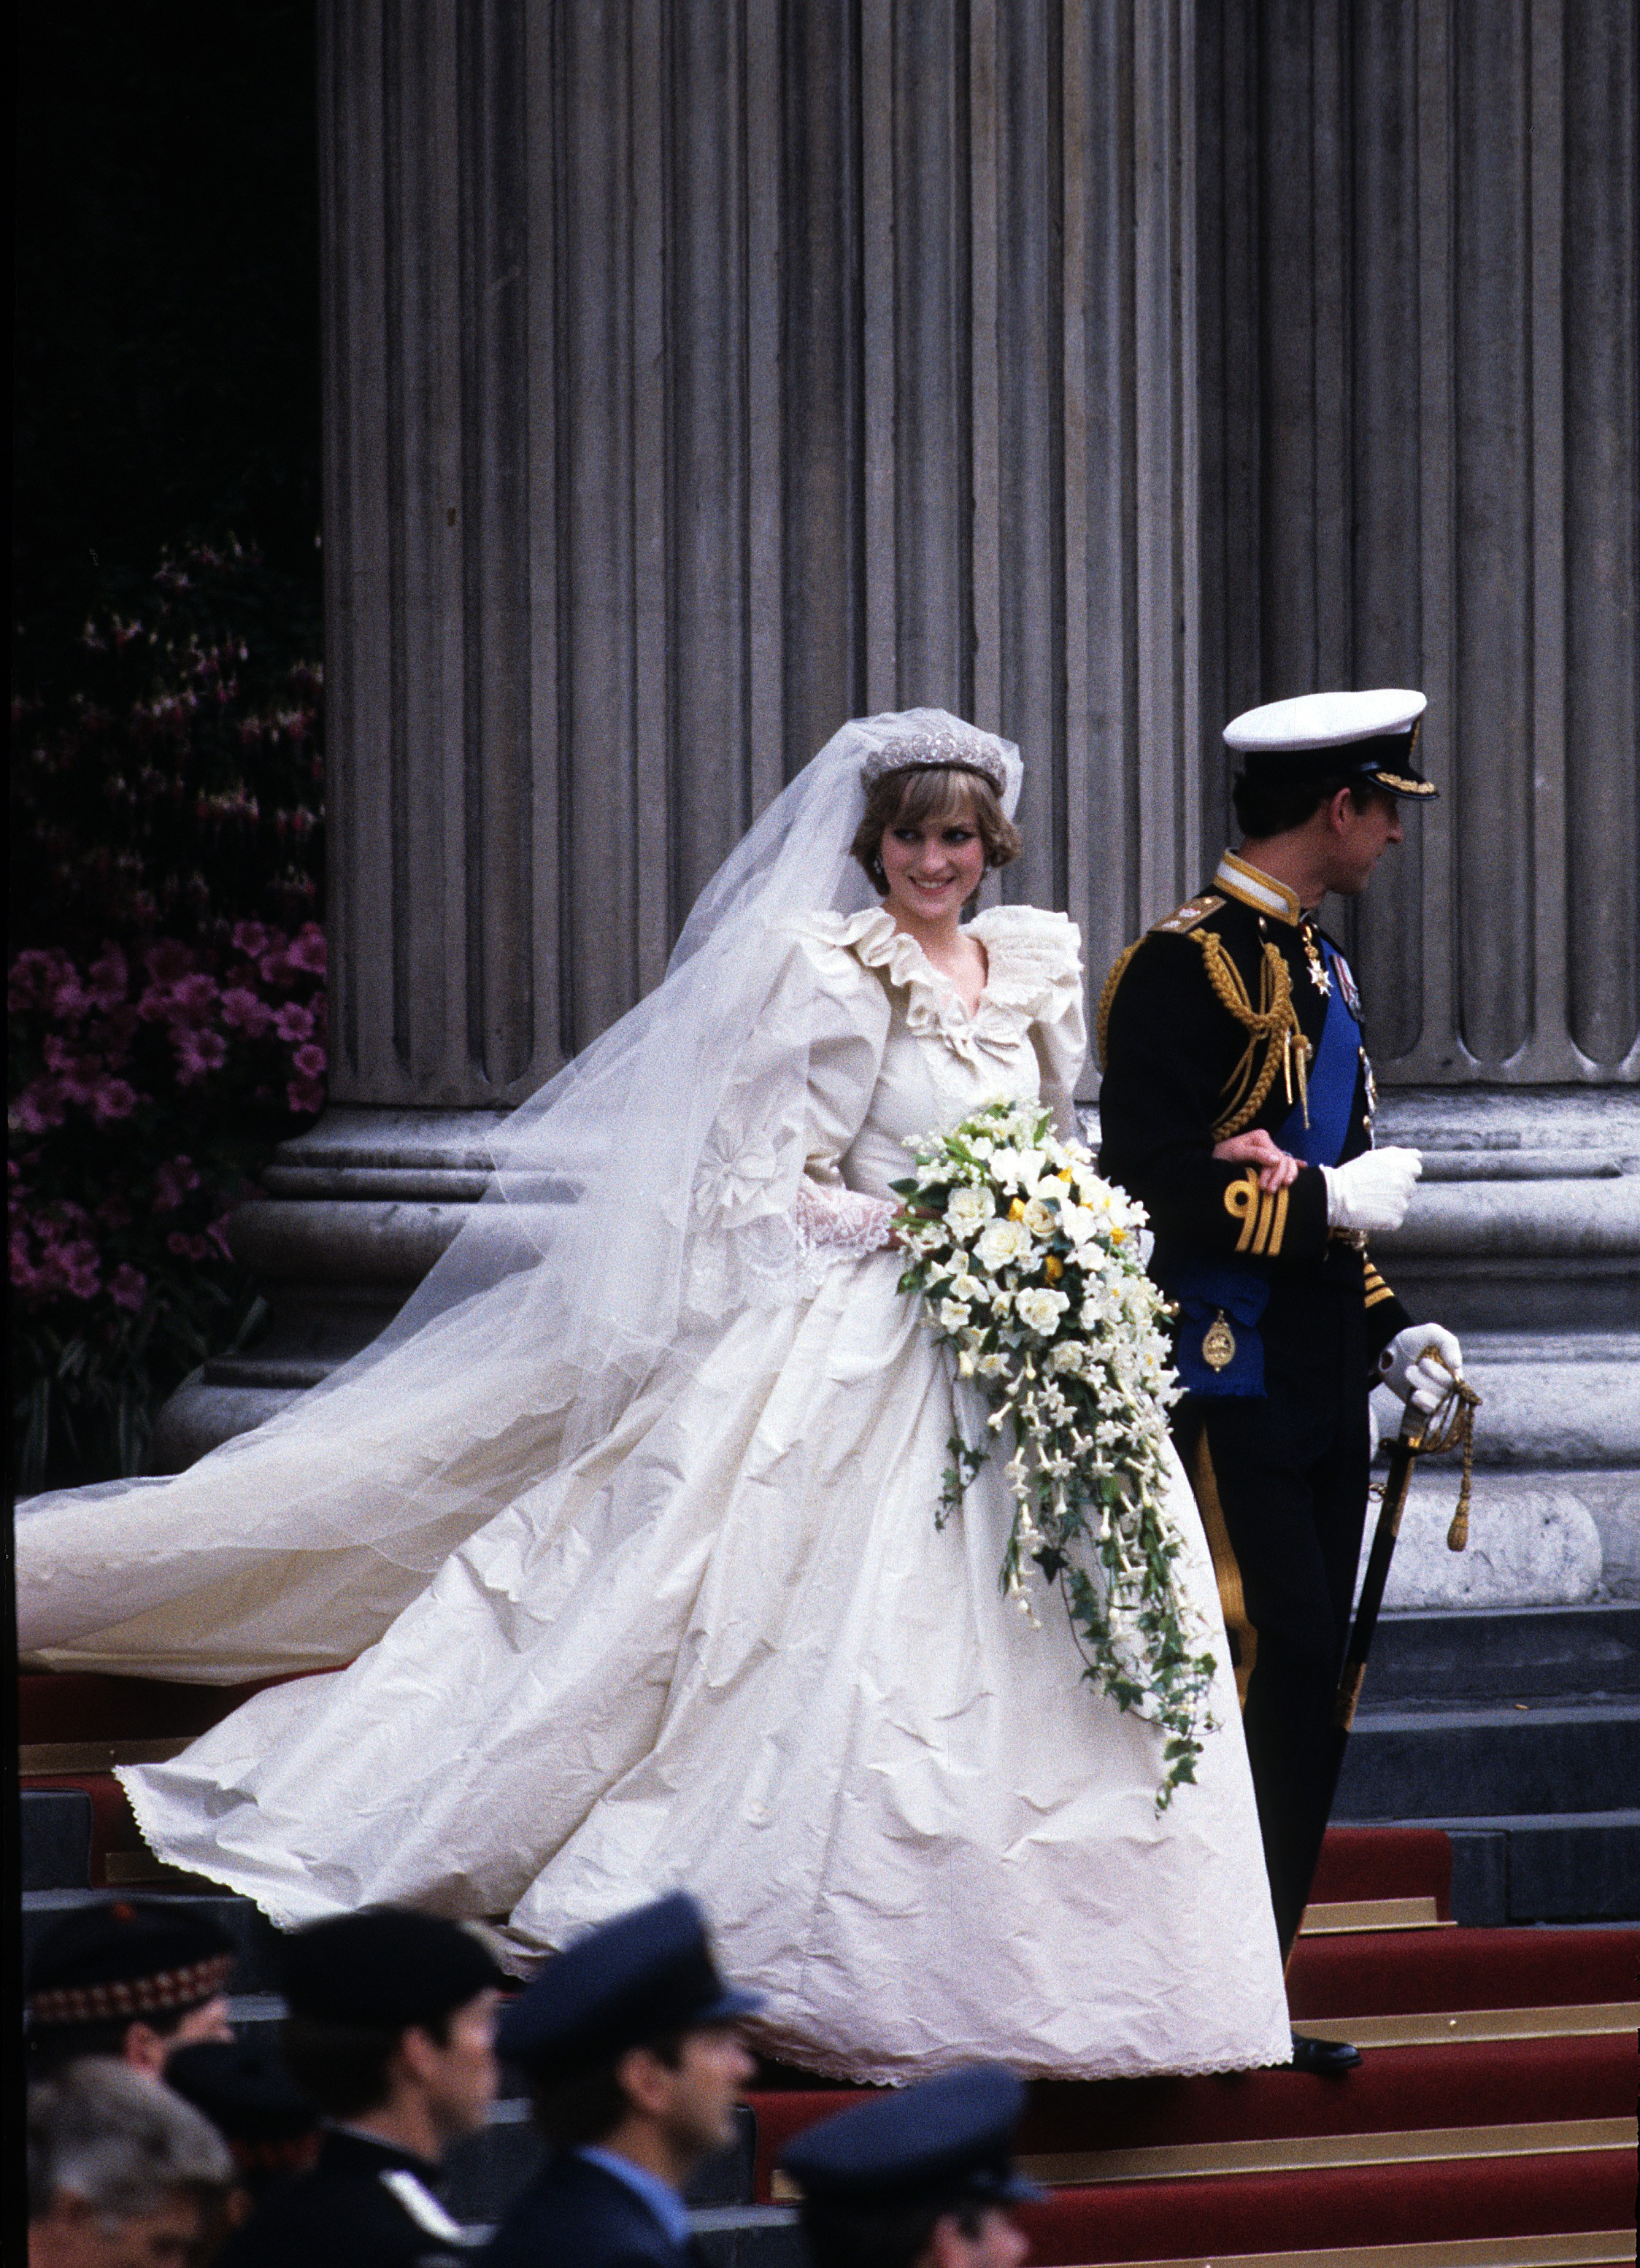 LONDON, ENGLAND - JULY 29: Prince Charles, Prince of Wales and Diana, Princess of Wales, wearing a wedding dress designed by David and Elizabeth Emanuel and the Spencer family Tiara, leave St. Paul's Cathedral following their wedding on July 29, 1981 in L (Foto: Getty Images)